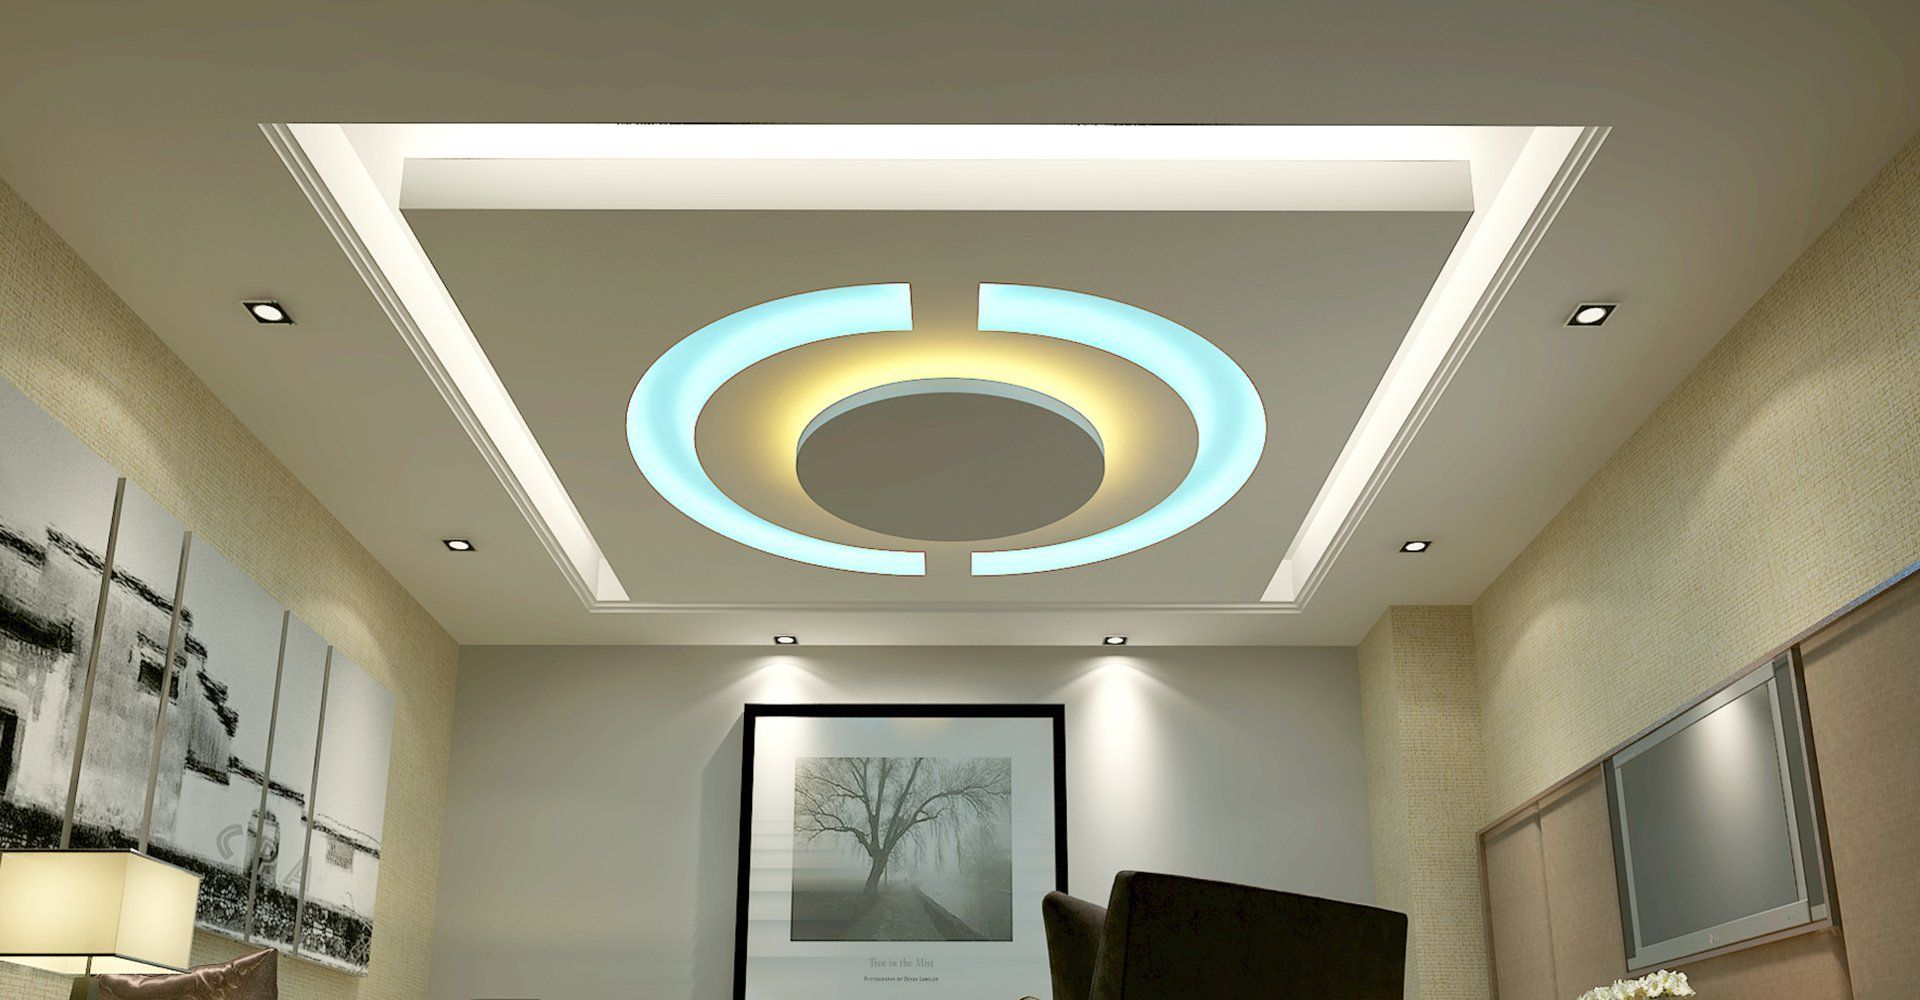 Drywall Ceiling Design Ideas   Flashmobile.info   Flashmobile.info  #FalseCeilingDesignDreams